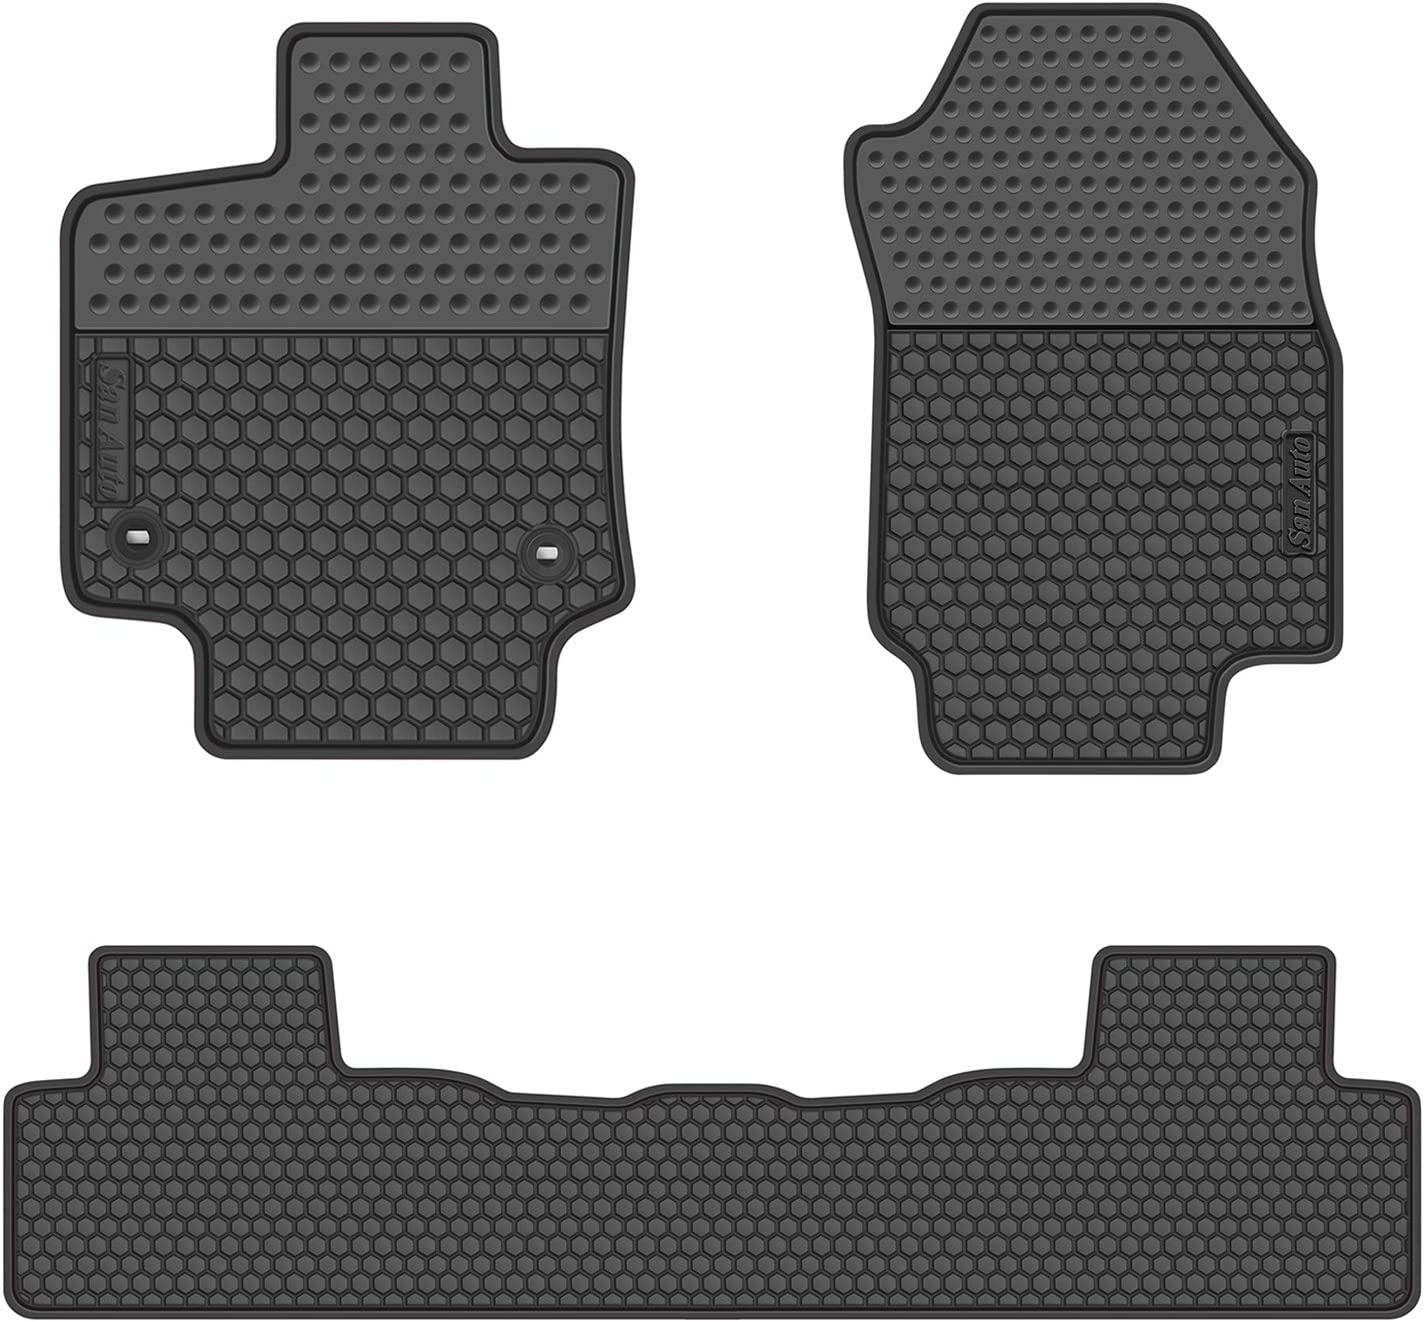 San Auto Car Floor Mats Compatible with Lexus ES 2019 2020 Custom Fit Full Black Rubber Car Floor Liners Set All Weather Protection Heavy Duty Odorless